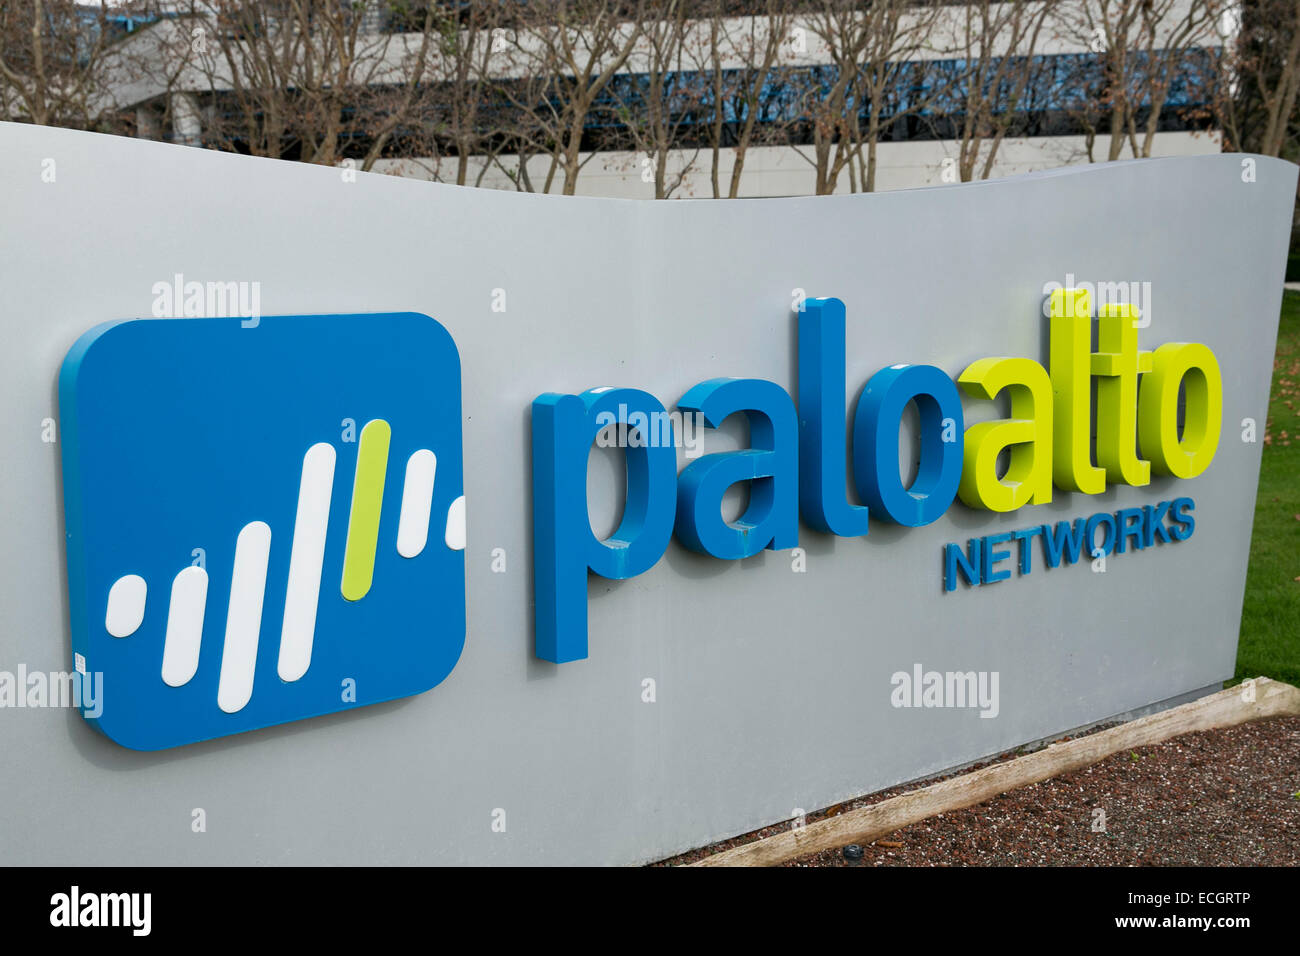 Palo alto networks stock options